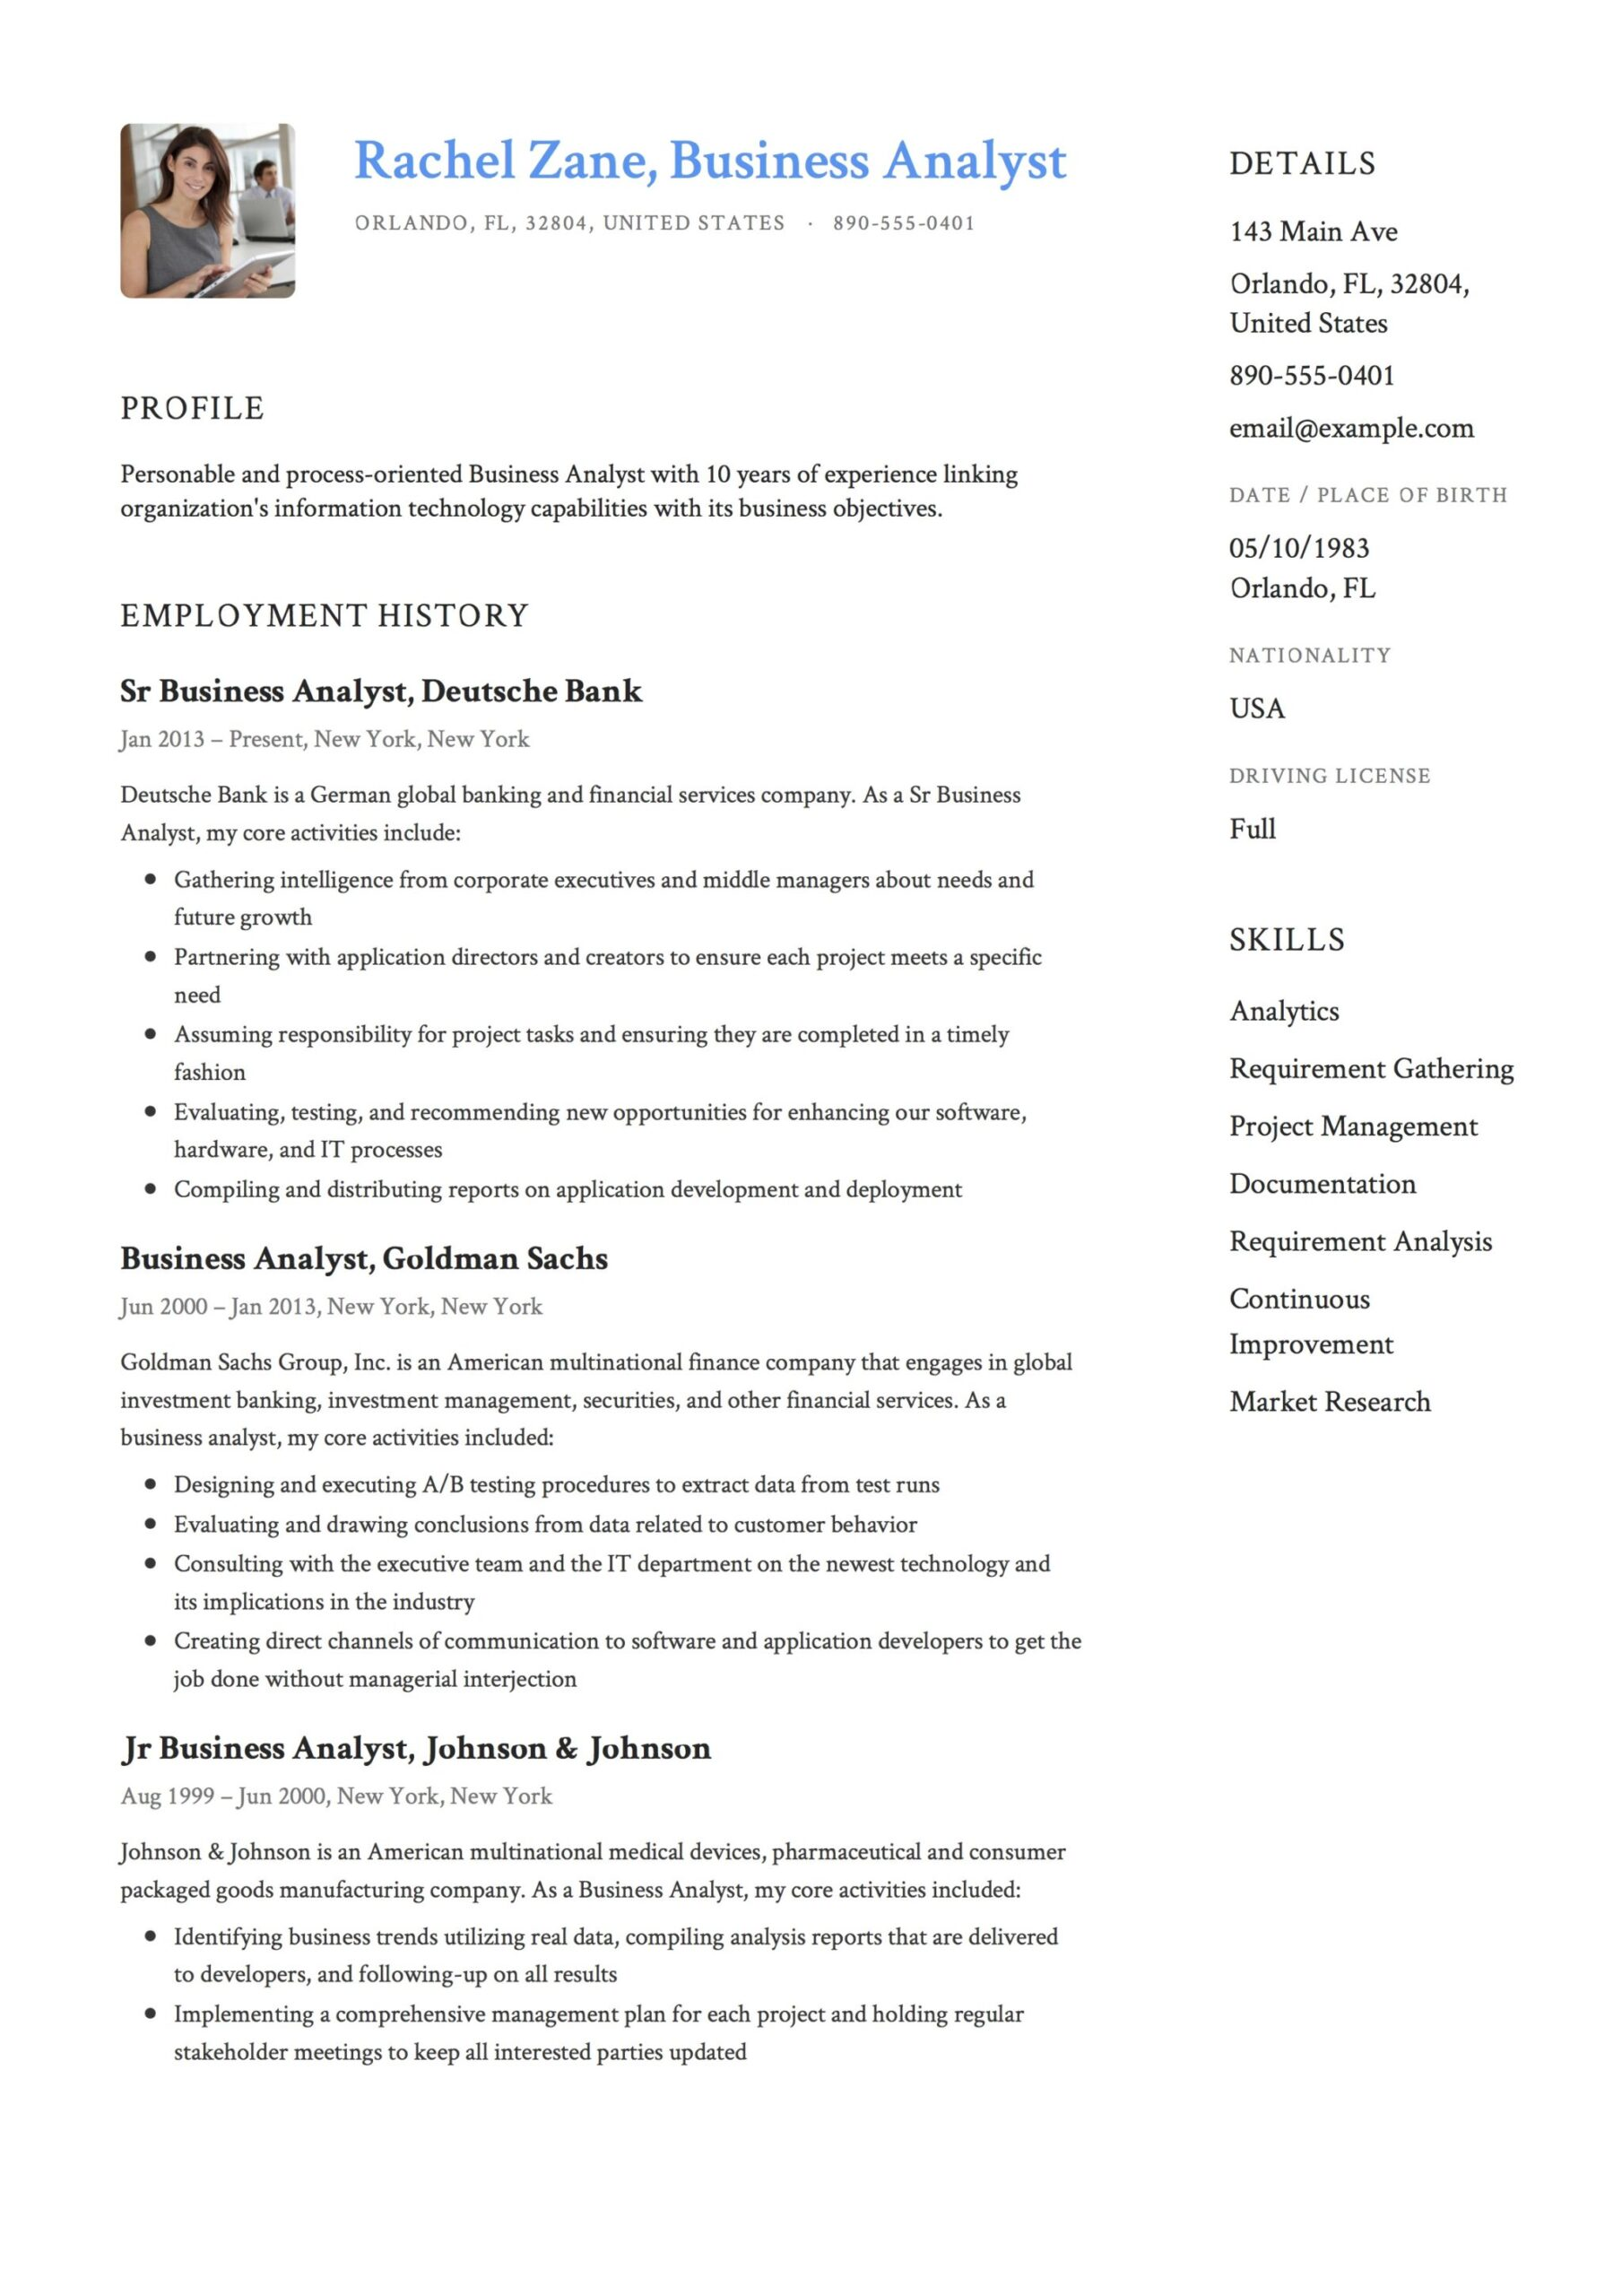 business analyst resume guide templates pdf free downloads senior example template Resume Senior Business Analyst Resume Example